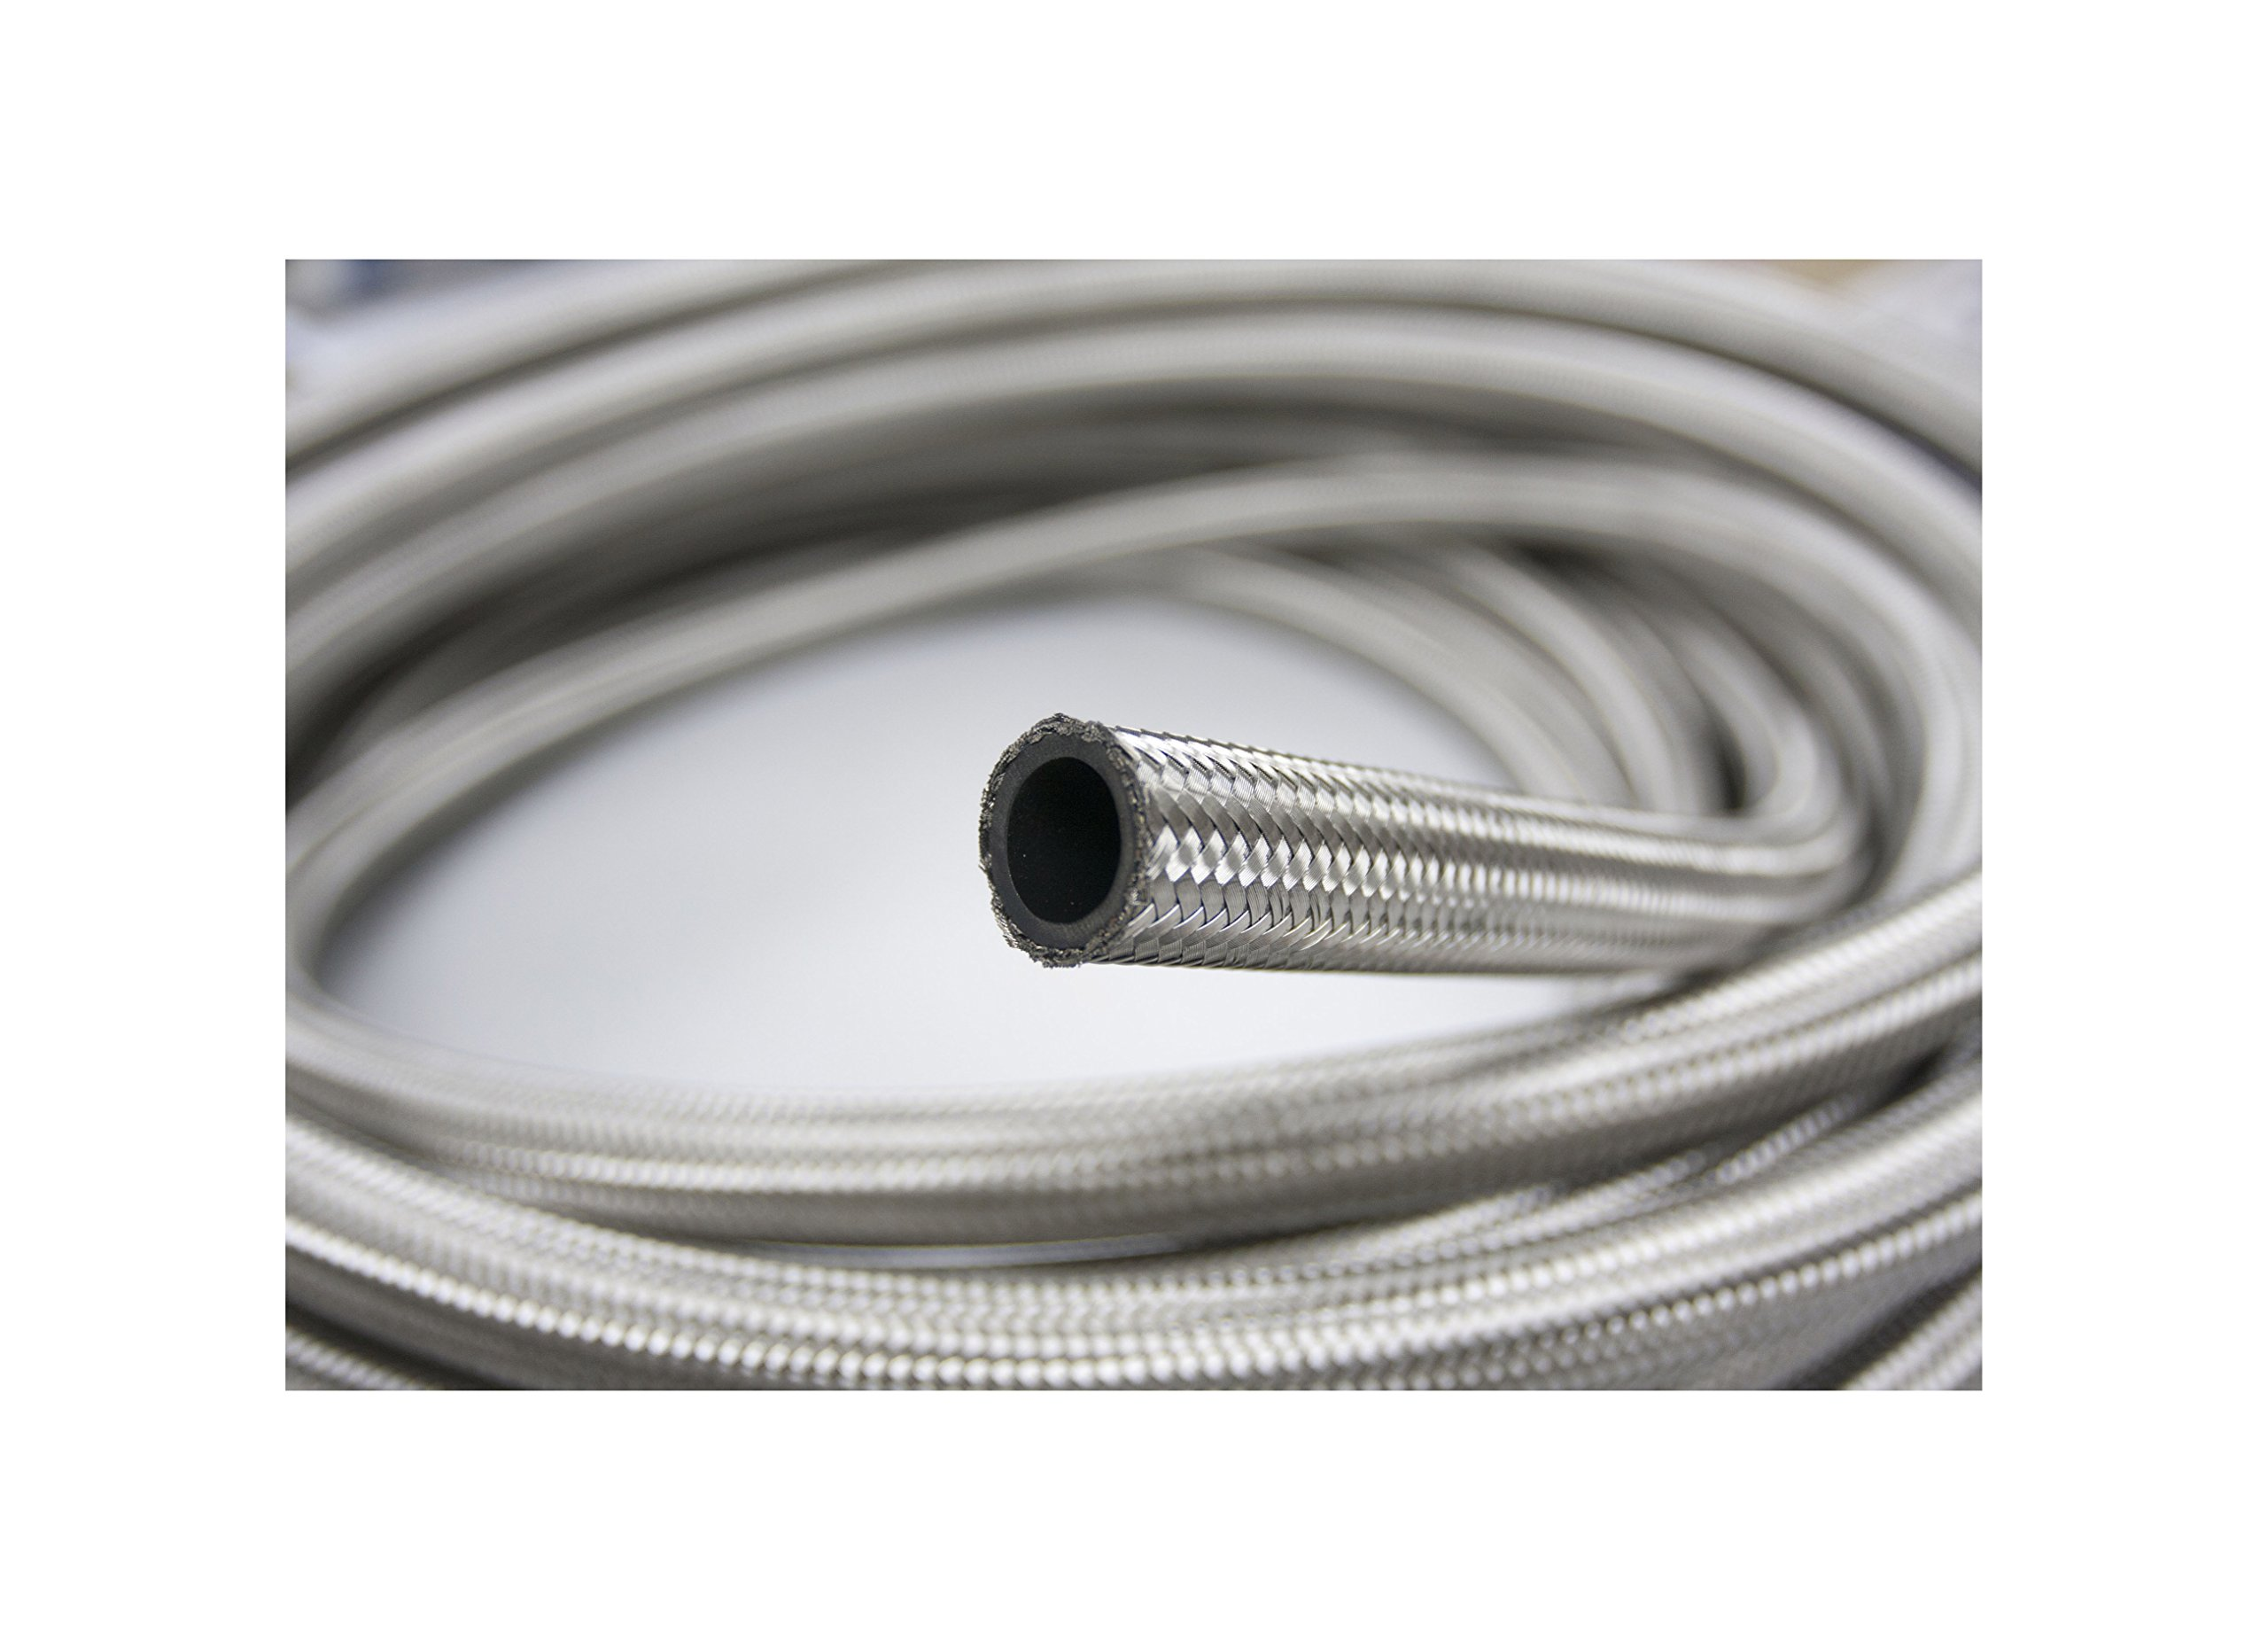 Autobahn88 Synthetic Rubber Hose with High Tensile Stainless Steel Braided (Double Layer) for Fluids : Oil, Water, Coolant, Methanol. Silver. (-20AN, 10 Feet)